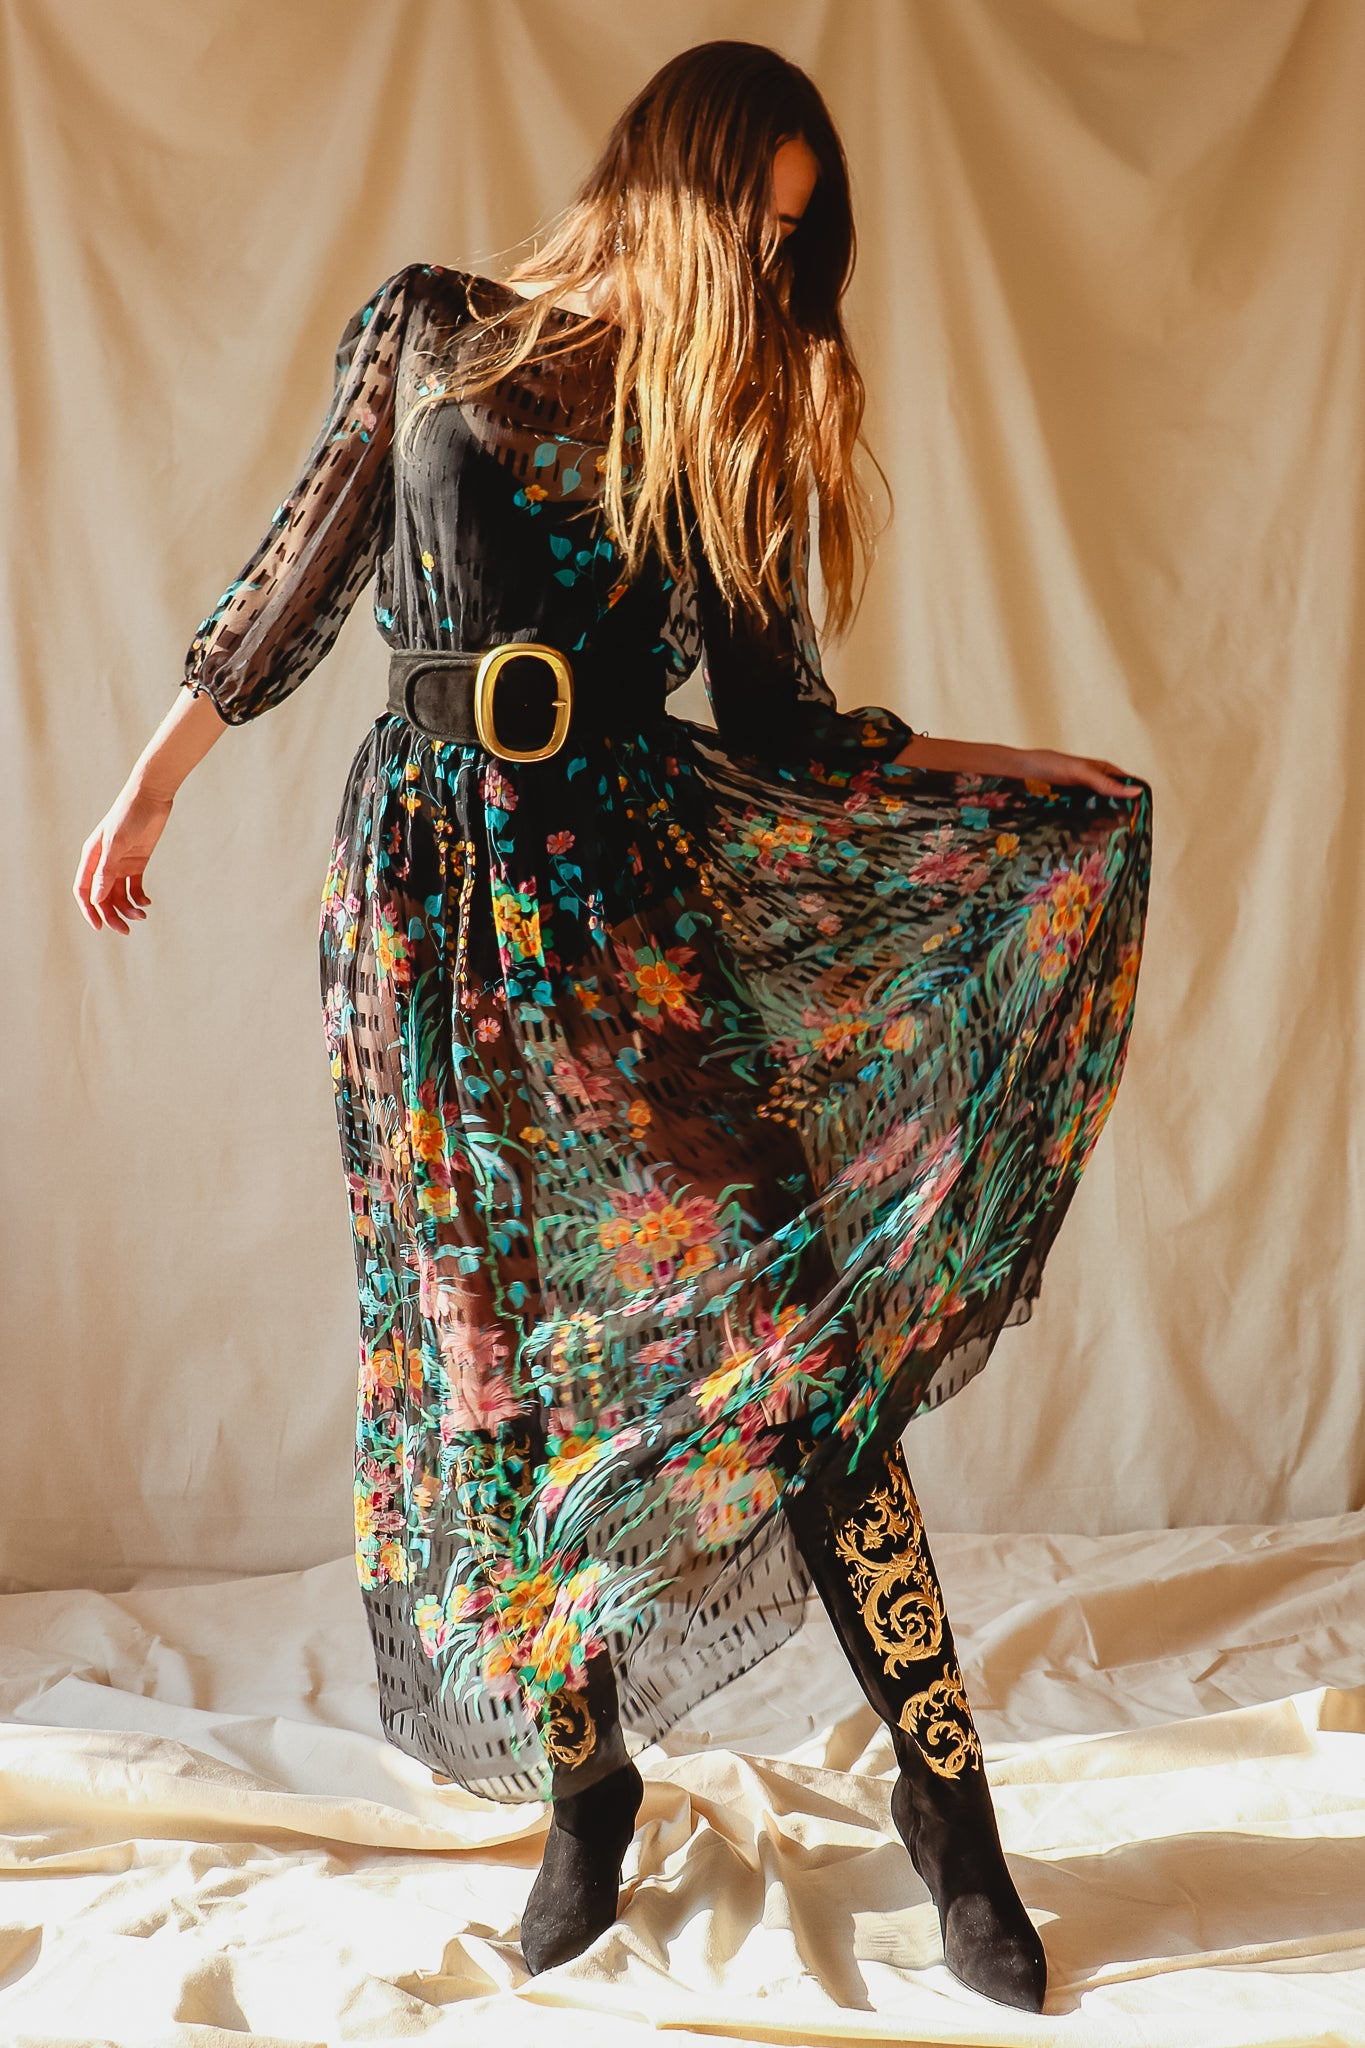 Recess Vintage Consignment LA Girl in Vintage Sheer Silk Floral Dress & Embroidered Boots